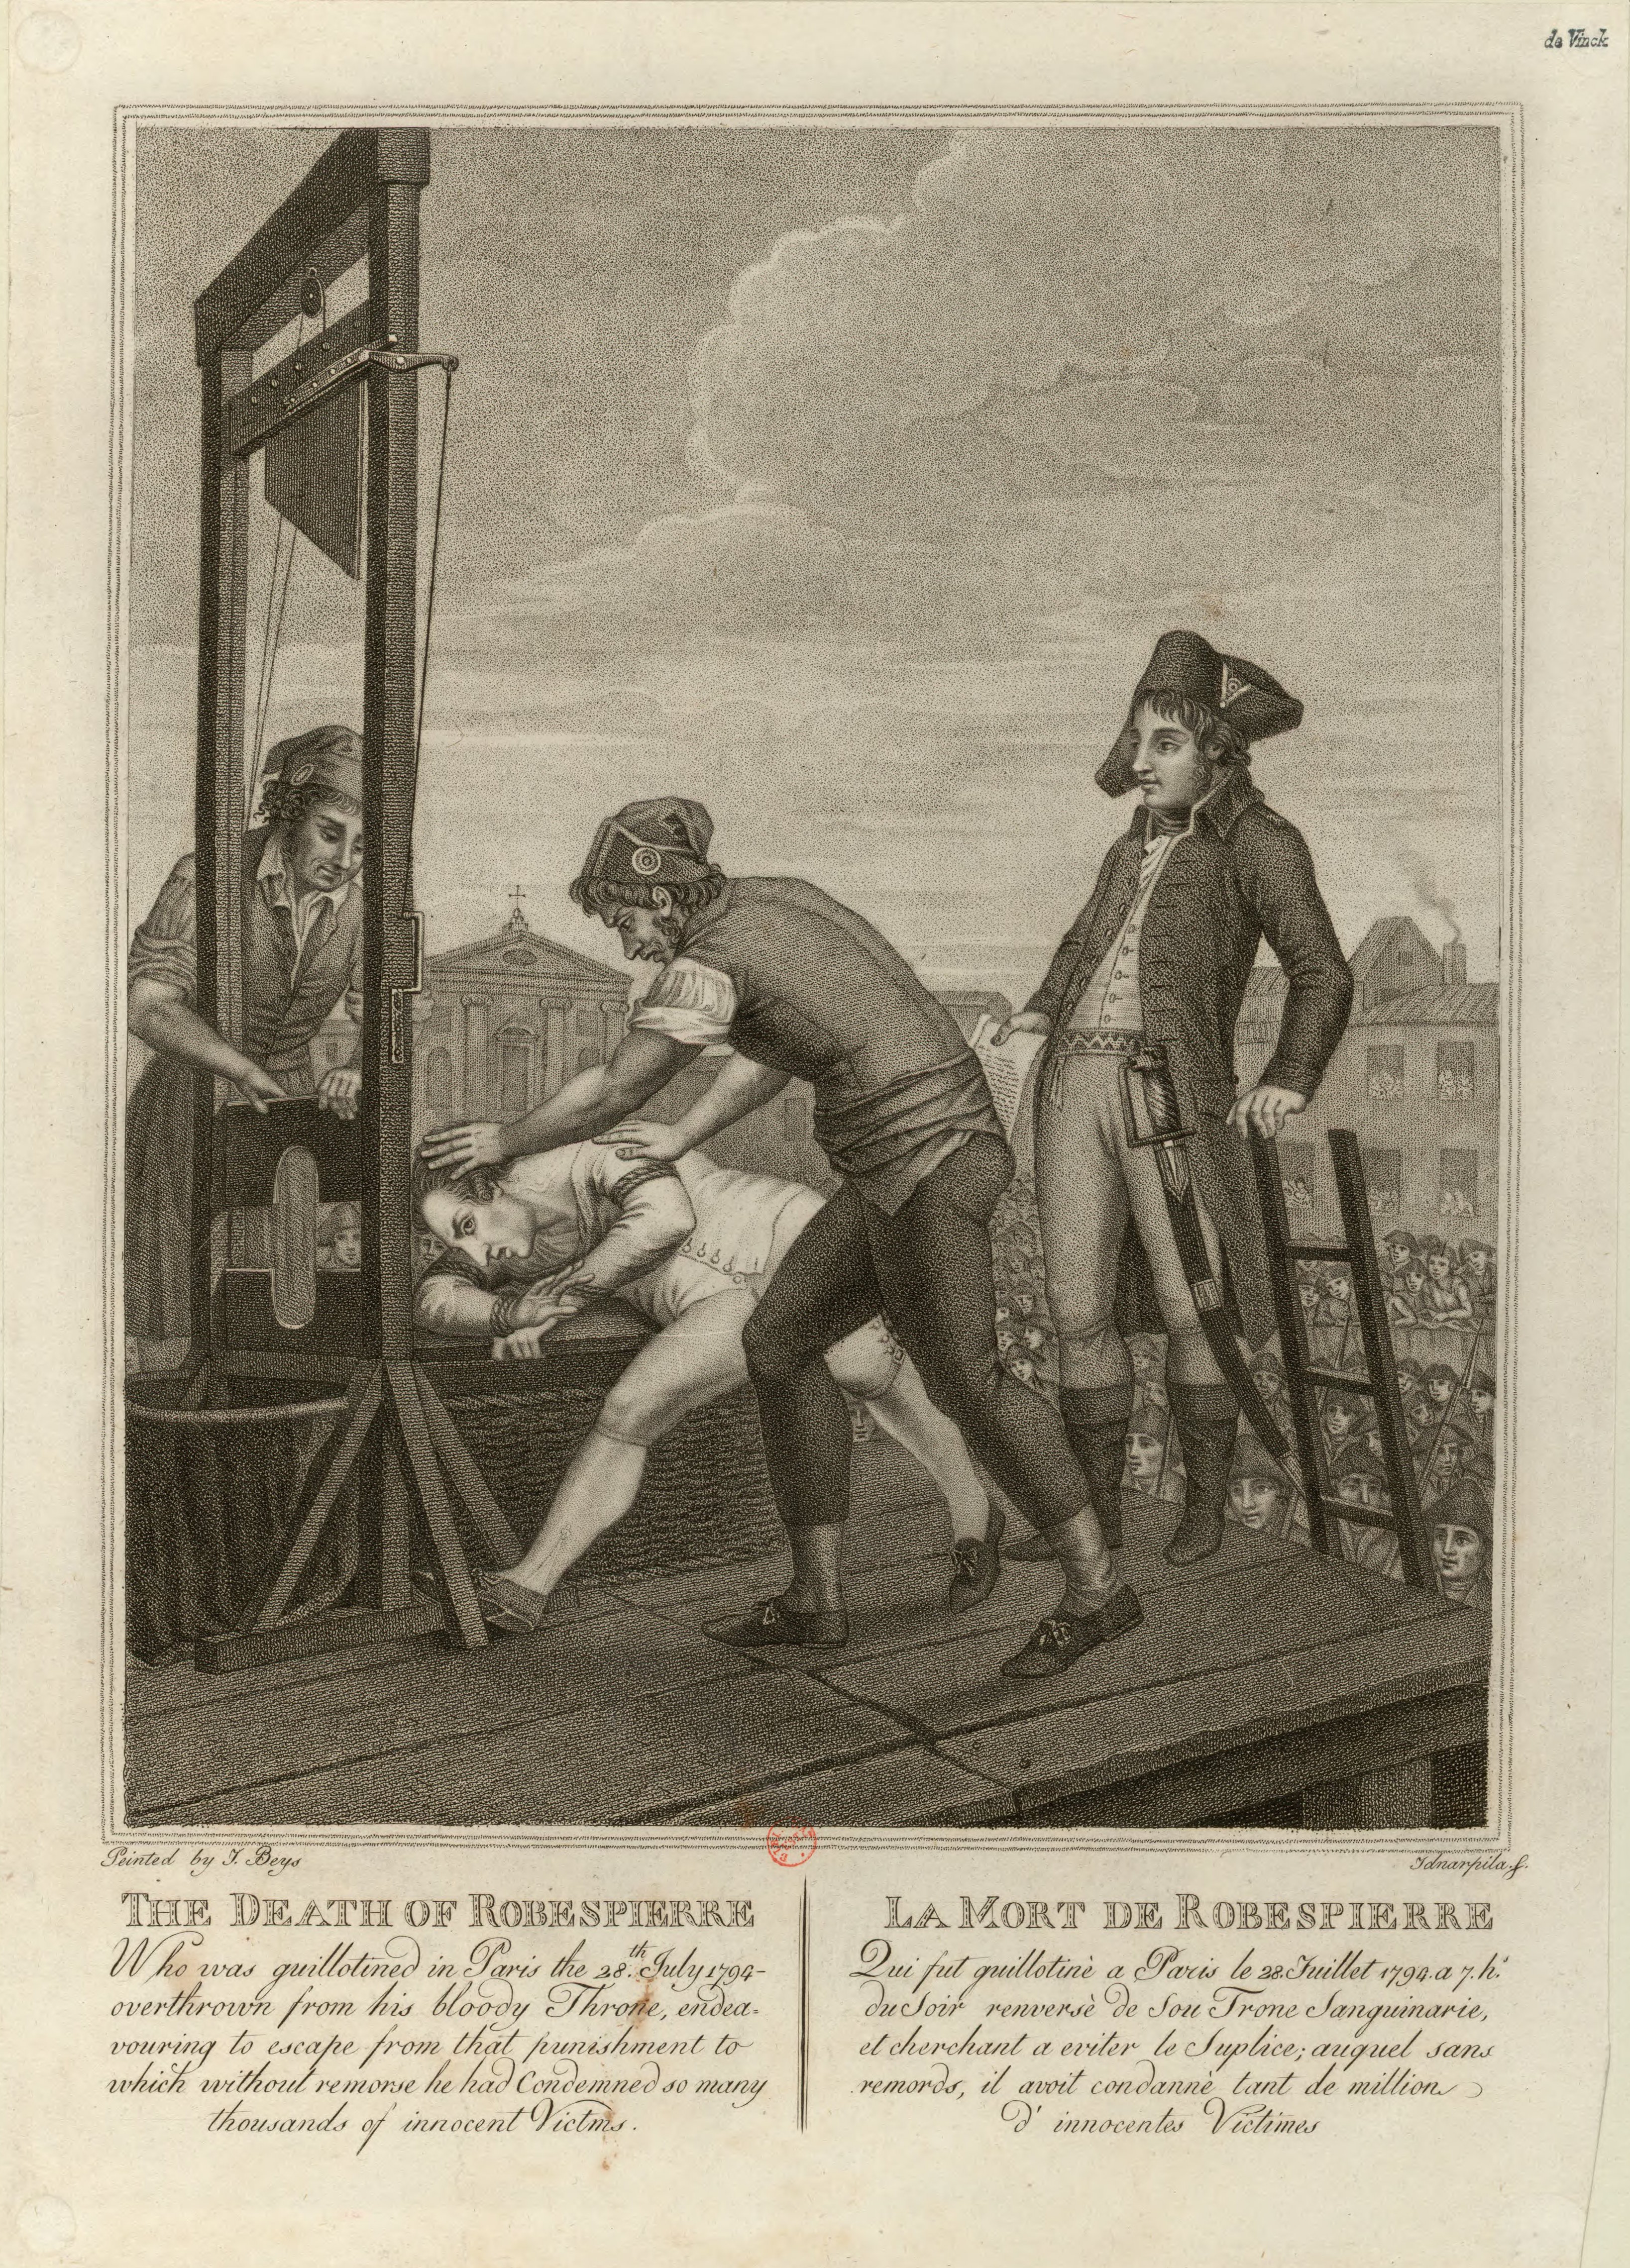 Engraving depiction of the death of Robespierre